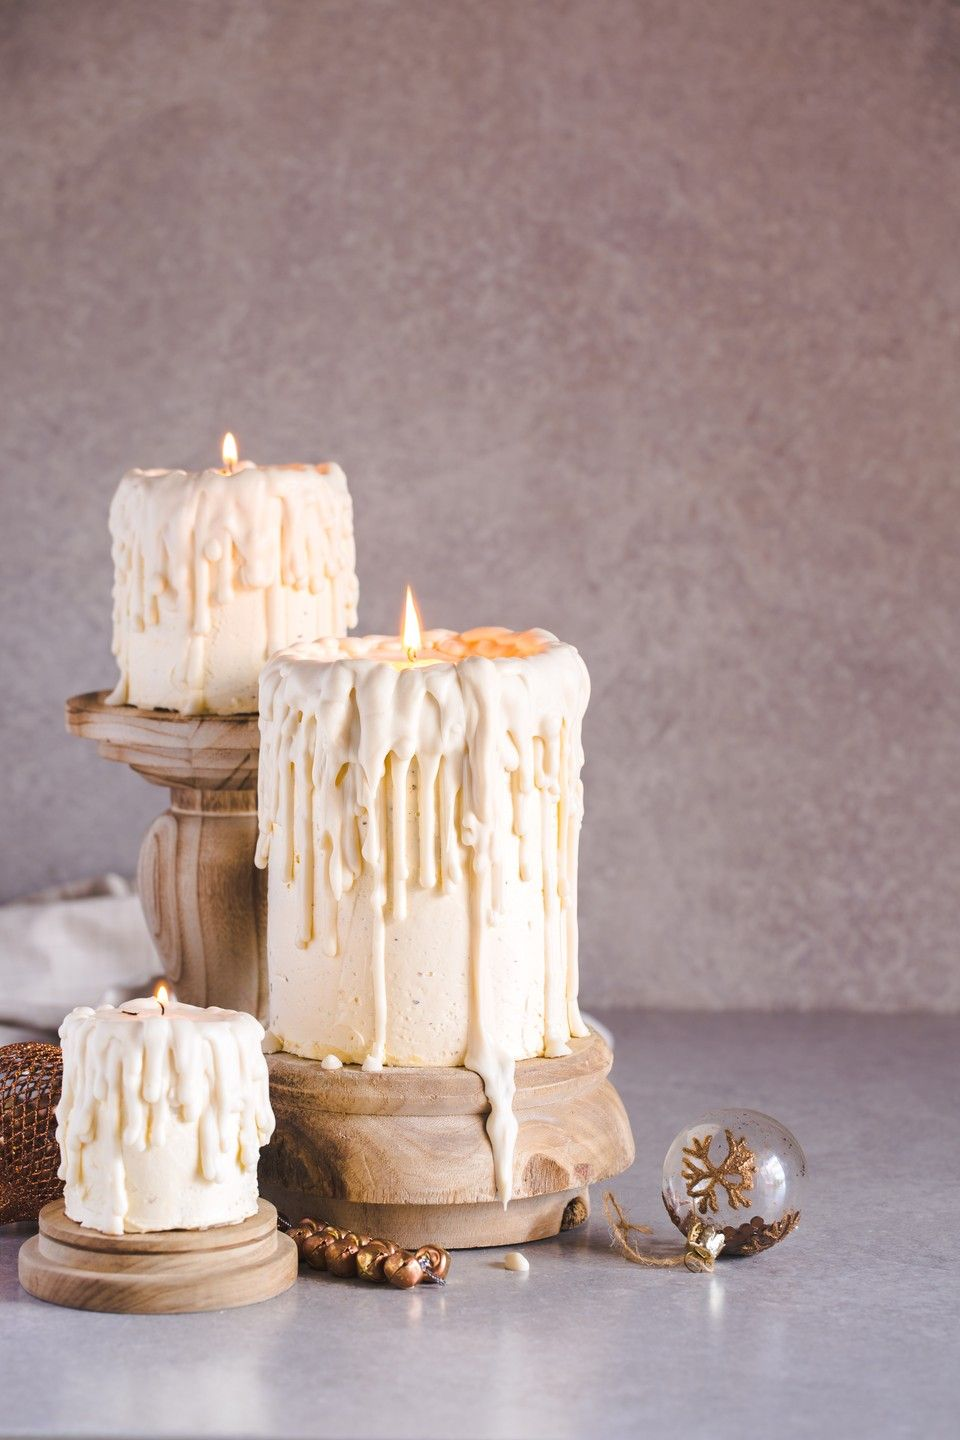 Christmas Dripping White Chocolate Candle Cakes - The Kate Tin